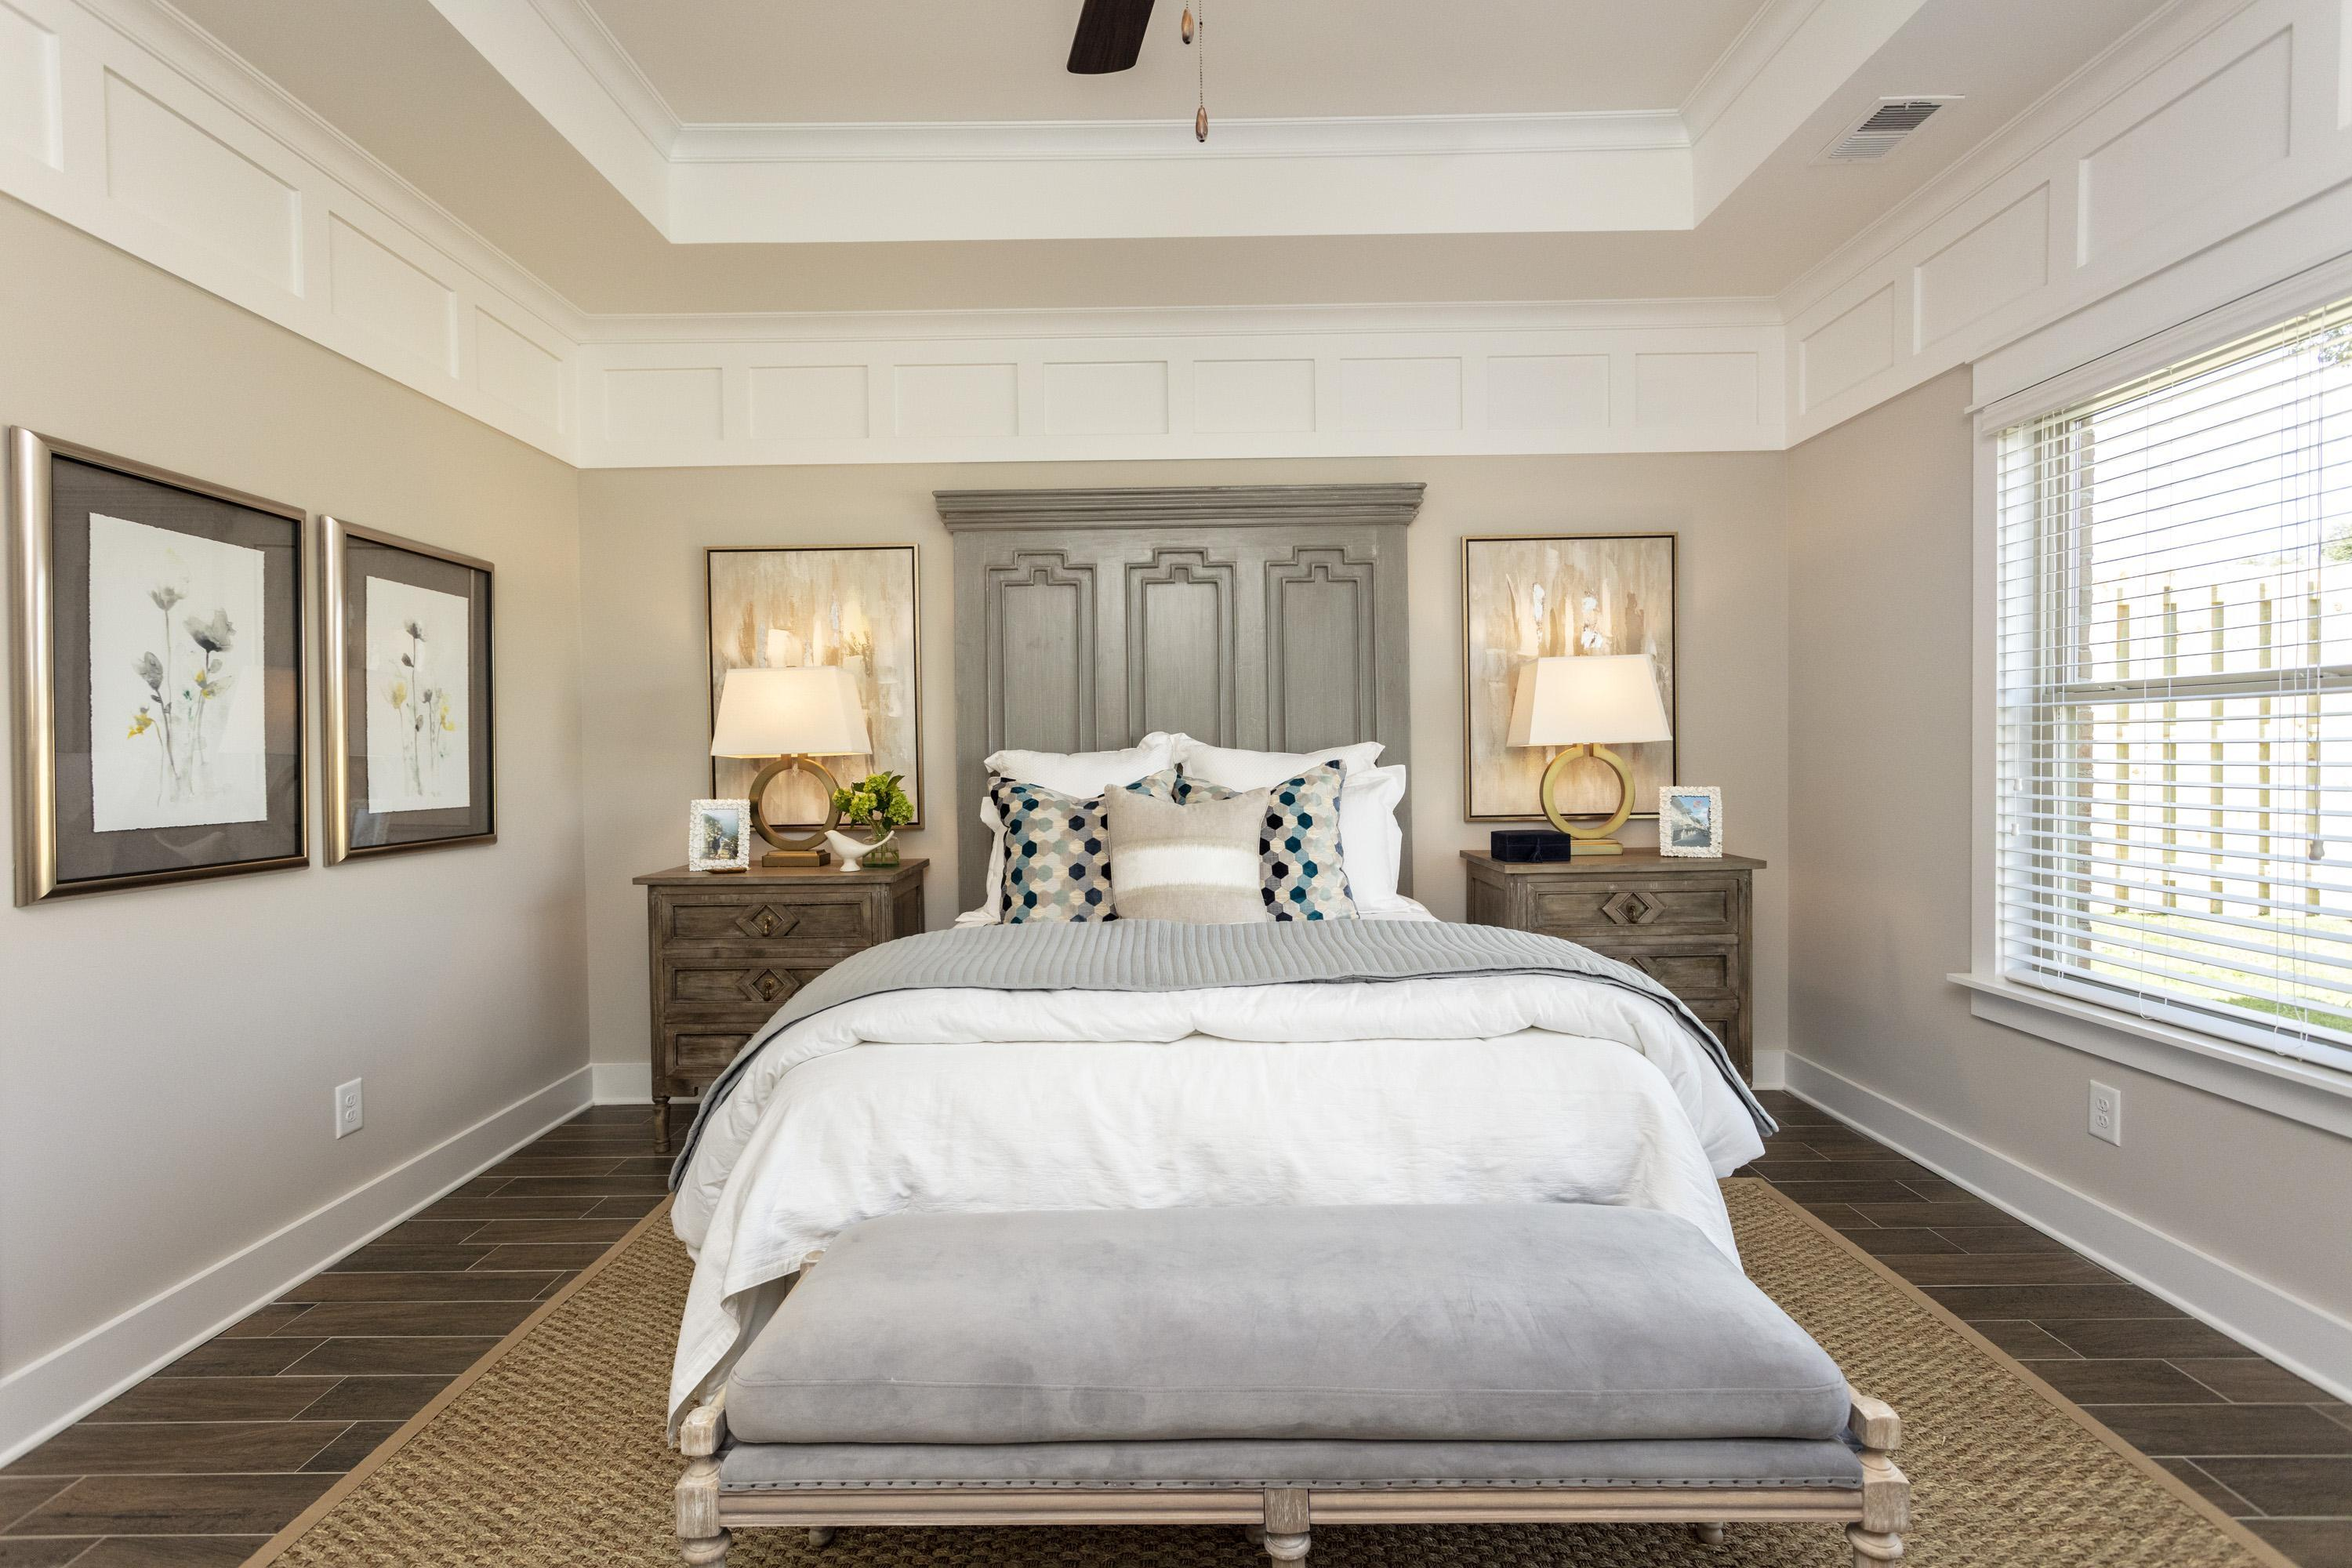 Bedroom featured in the Hamilton II A By Tower Homes in Birmingham, AL